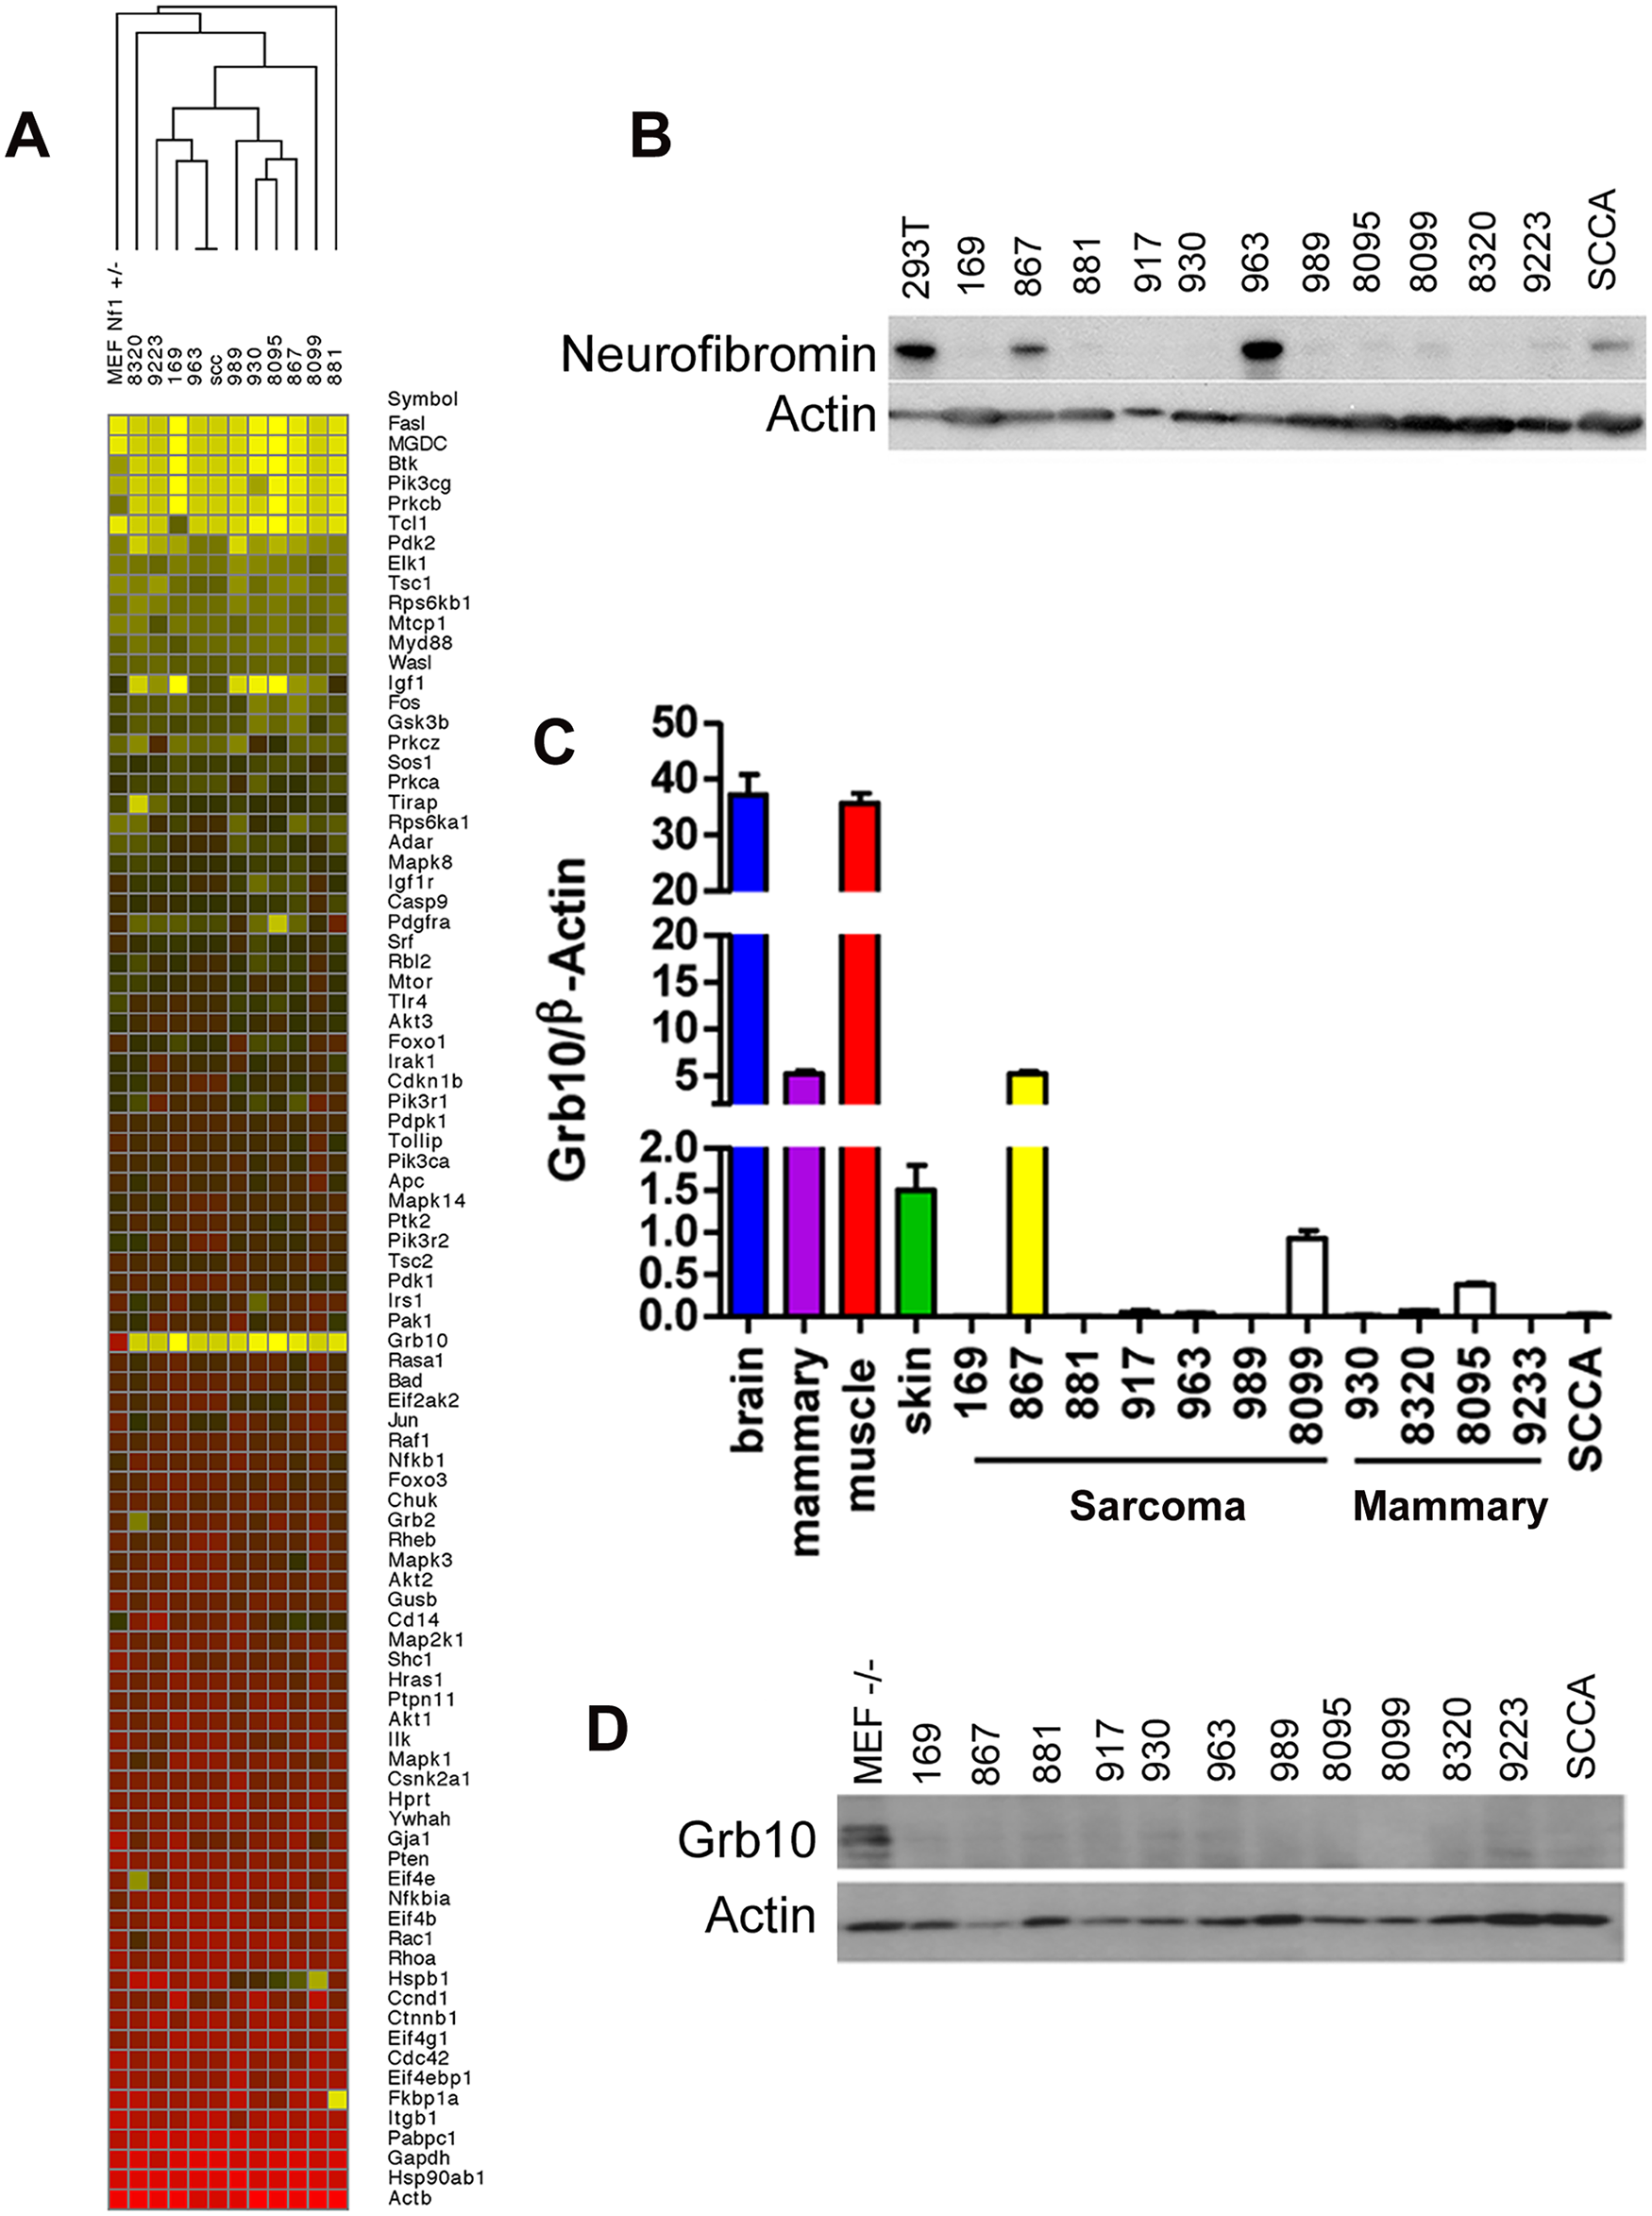 <i>Grb10</i> expression is reduced in <i>Nf1</i> mutant tumor cell lines.